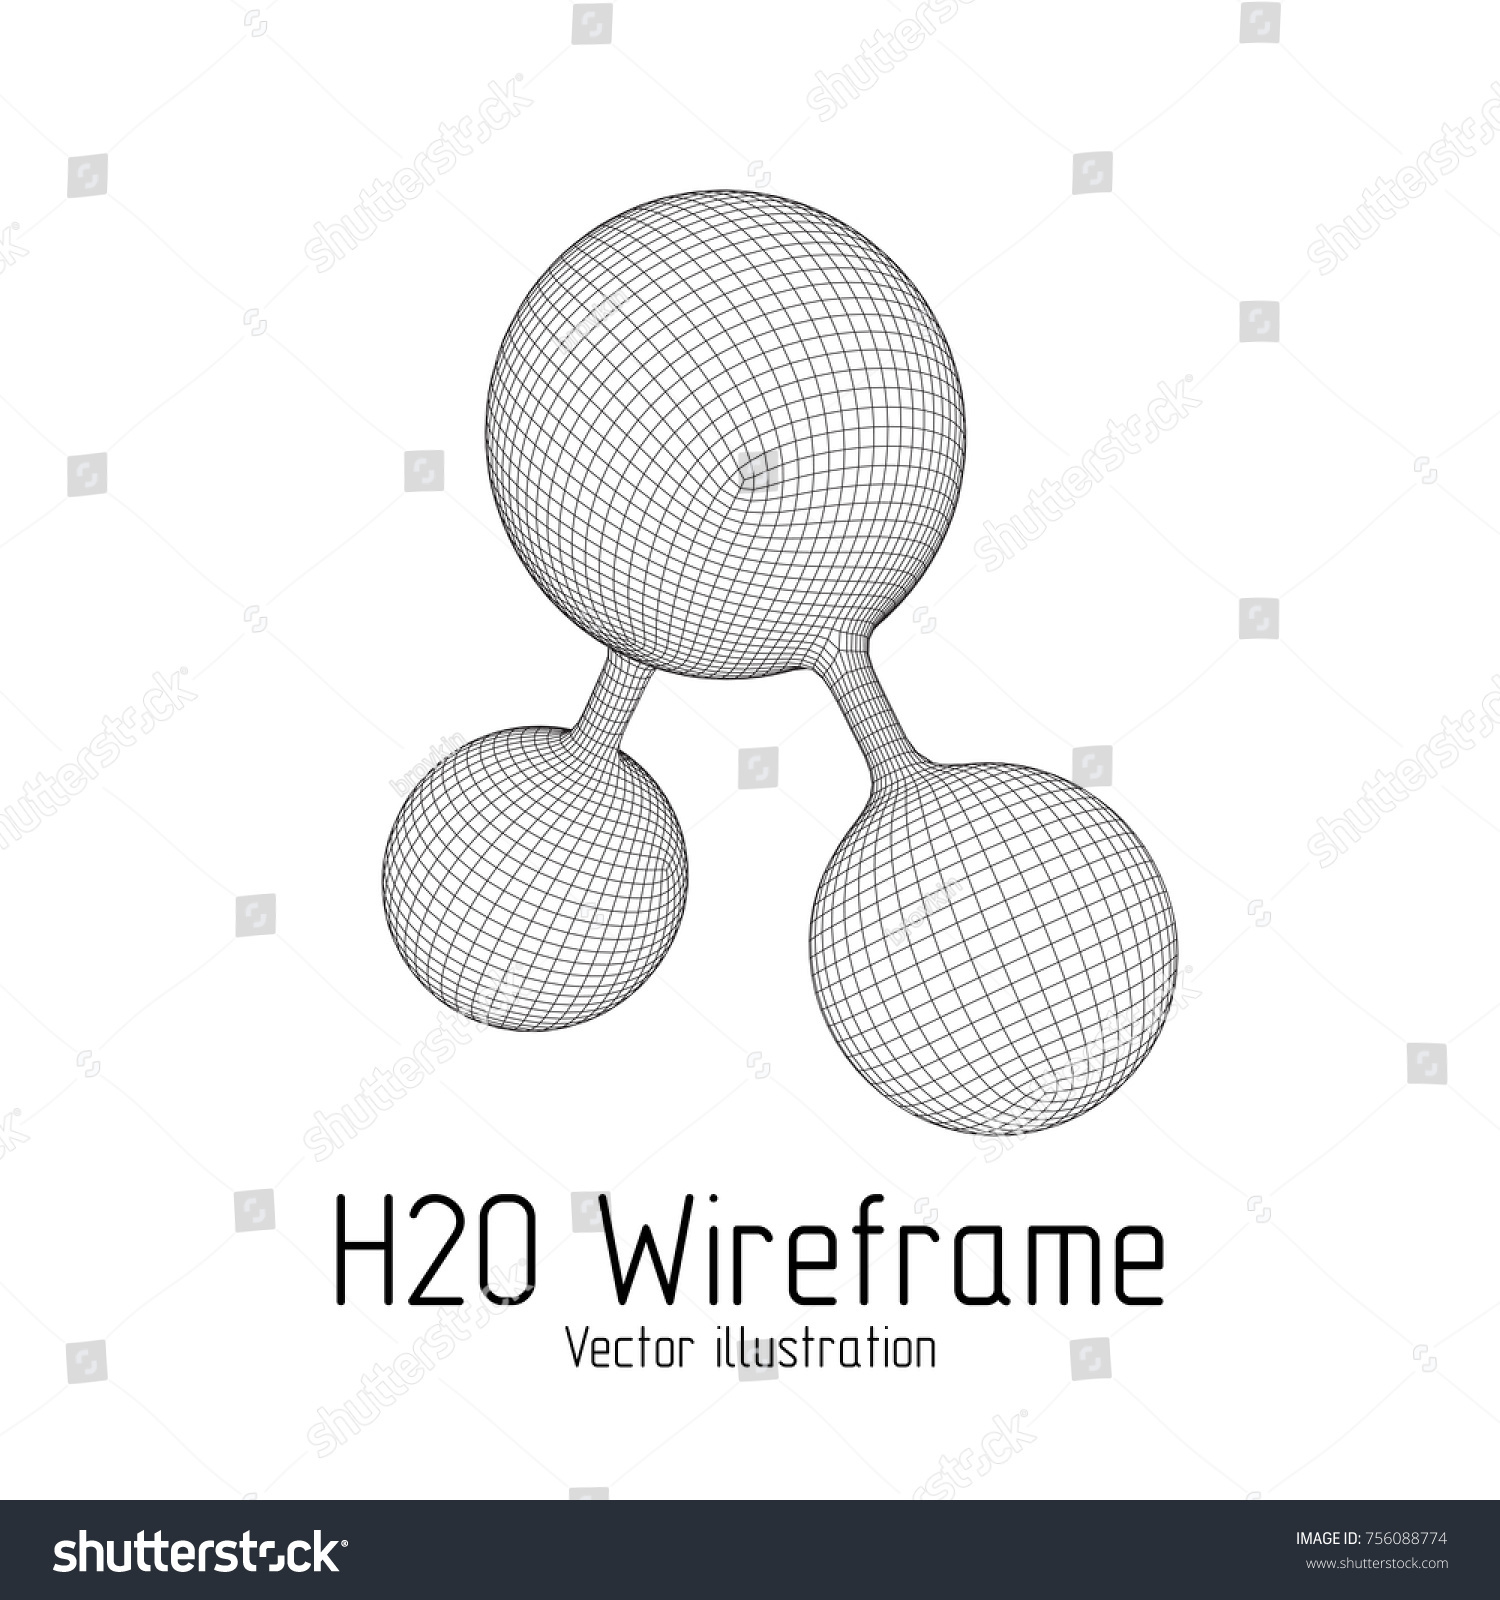 Wireframe mesh h2o water molecule connection stock vector wireframe mesh h2o water molecule connection structure low poly vector illustration science and pooptronica Choice Image